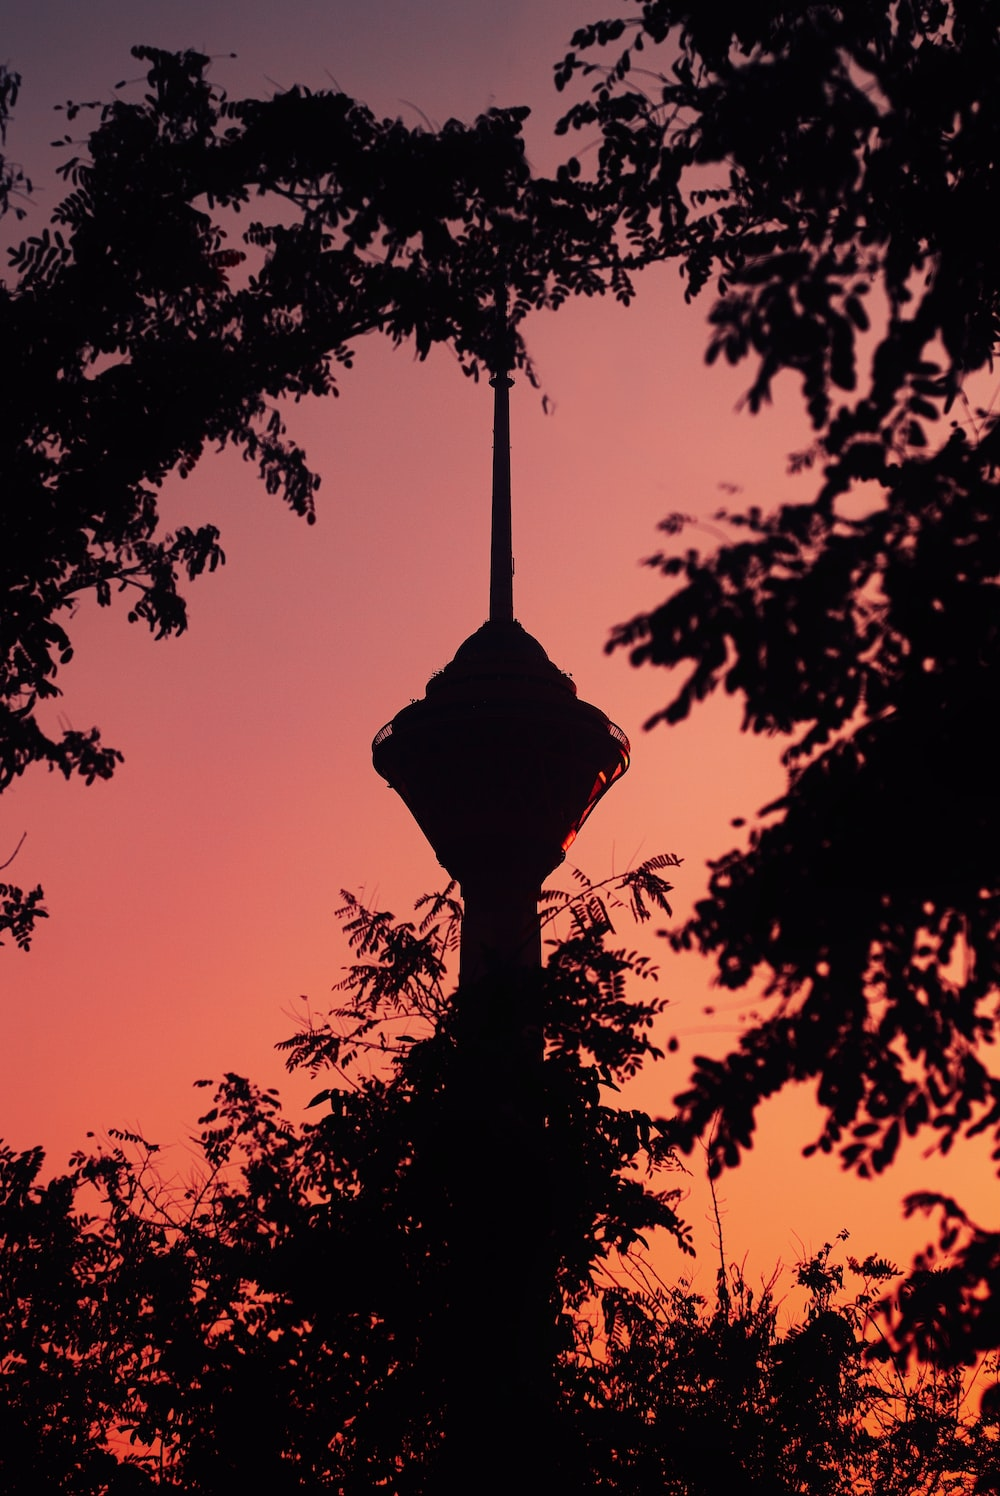 silhouette of tower and trees